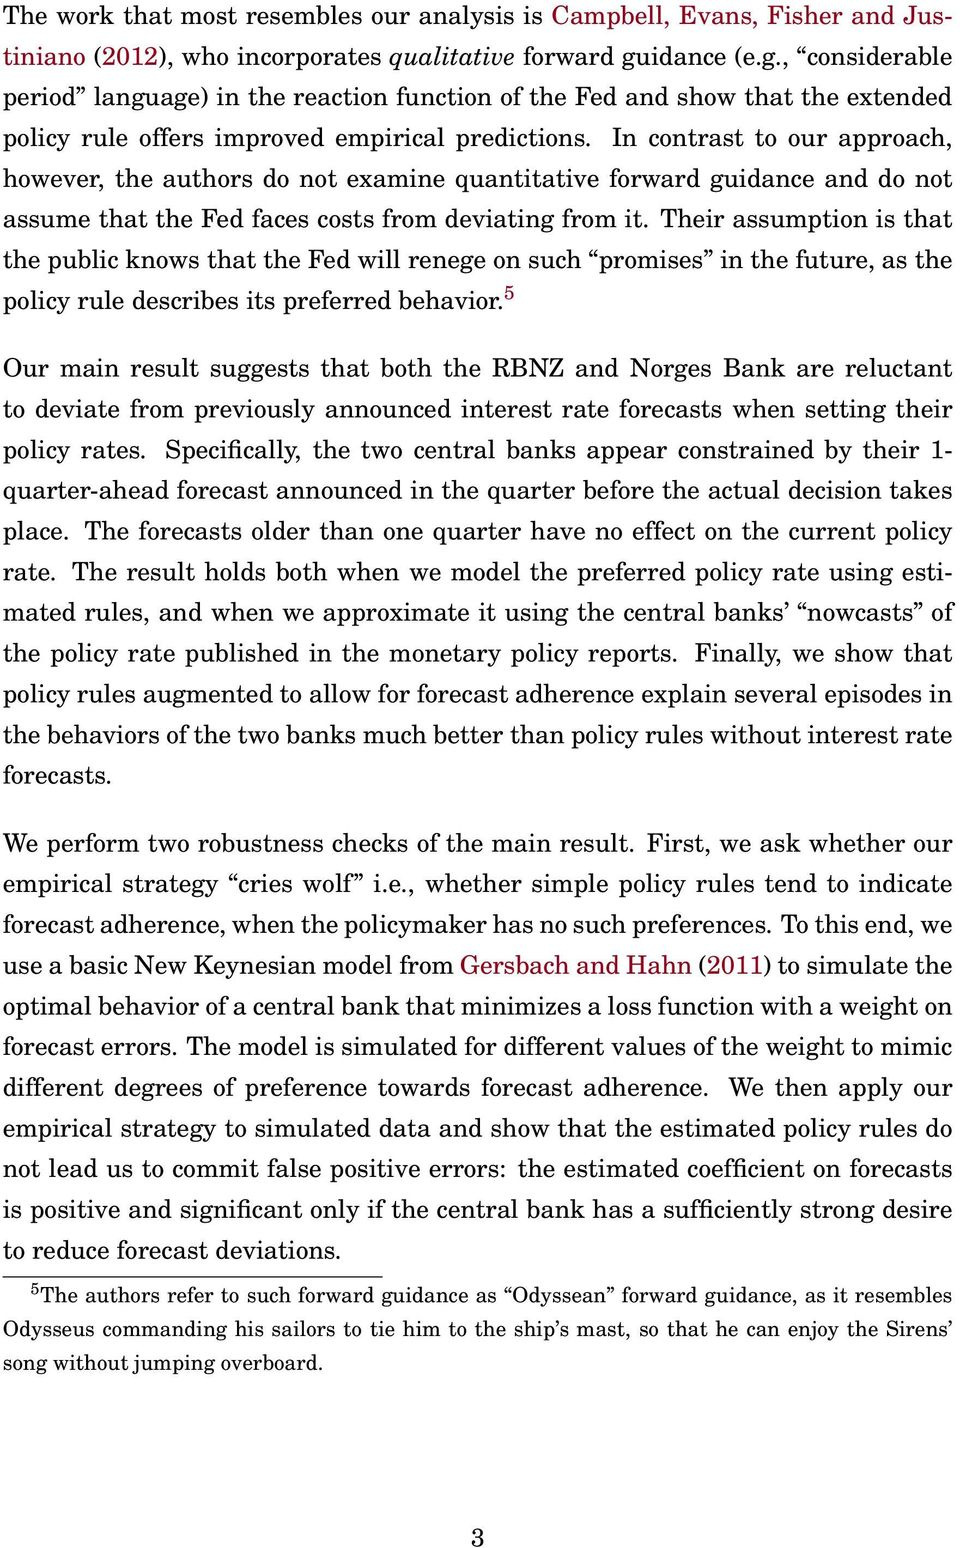 In contrast to our approach, however, the authors do not examine quantitative forward guidance and do not assume that the Fed faces costs from deviating from it.